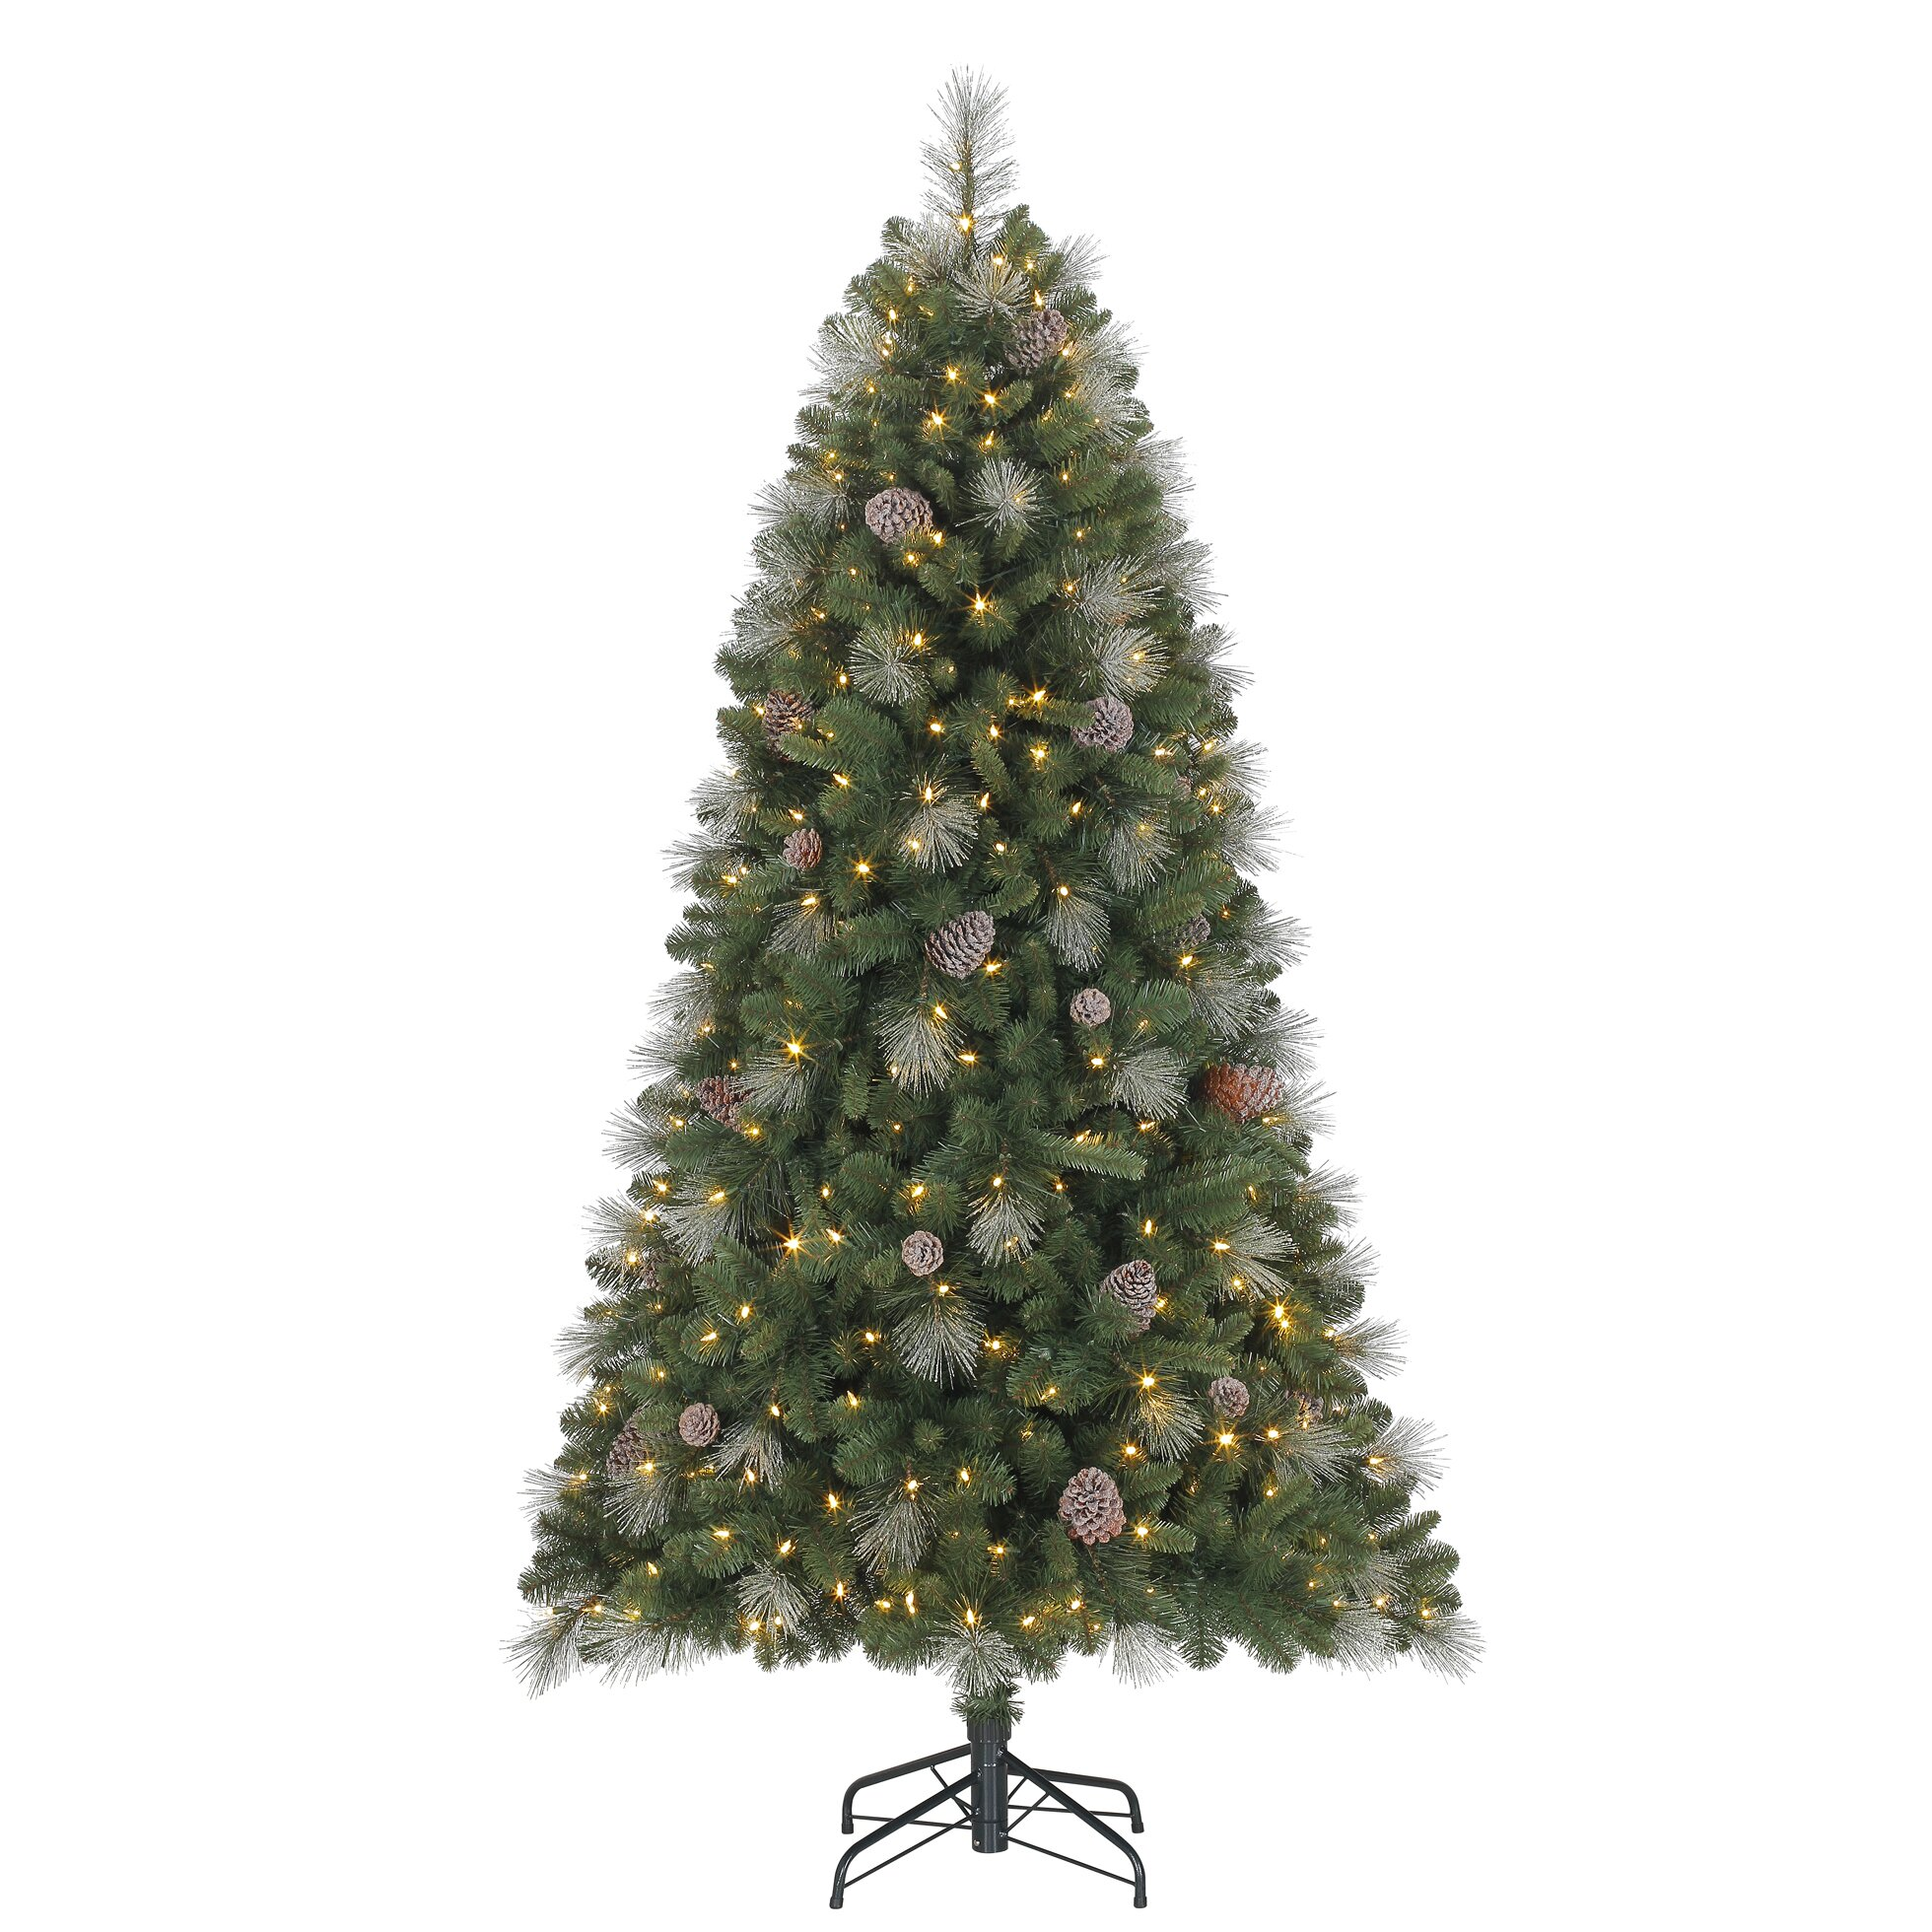 Polygroup 6 5 39 Green Silver Fir Artificial Christmas Tree